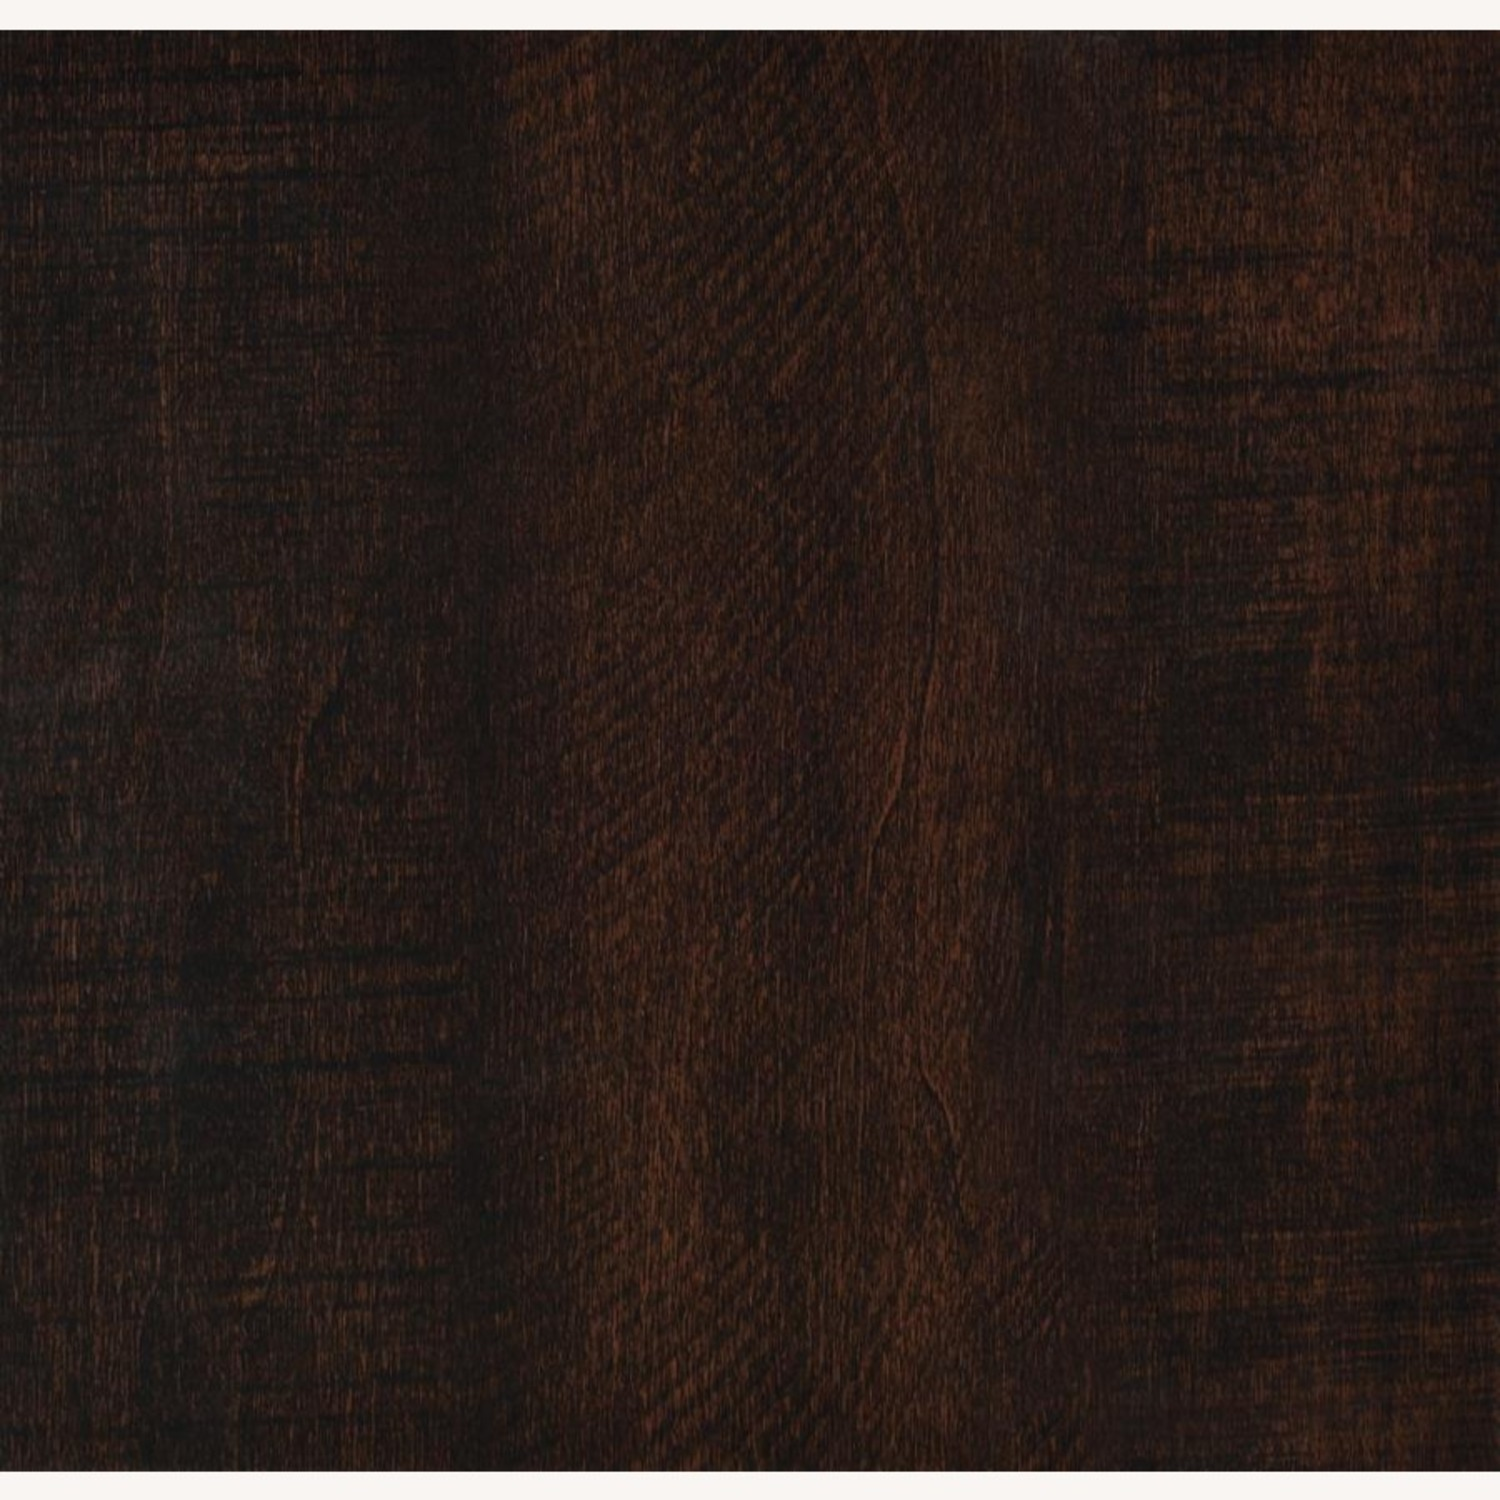 Panel Screen In Tobacco Finish & Cappuccino Frame - image-4